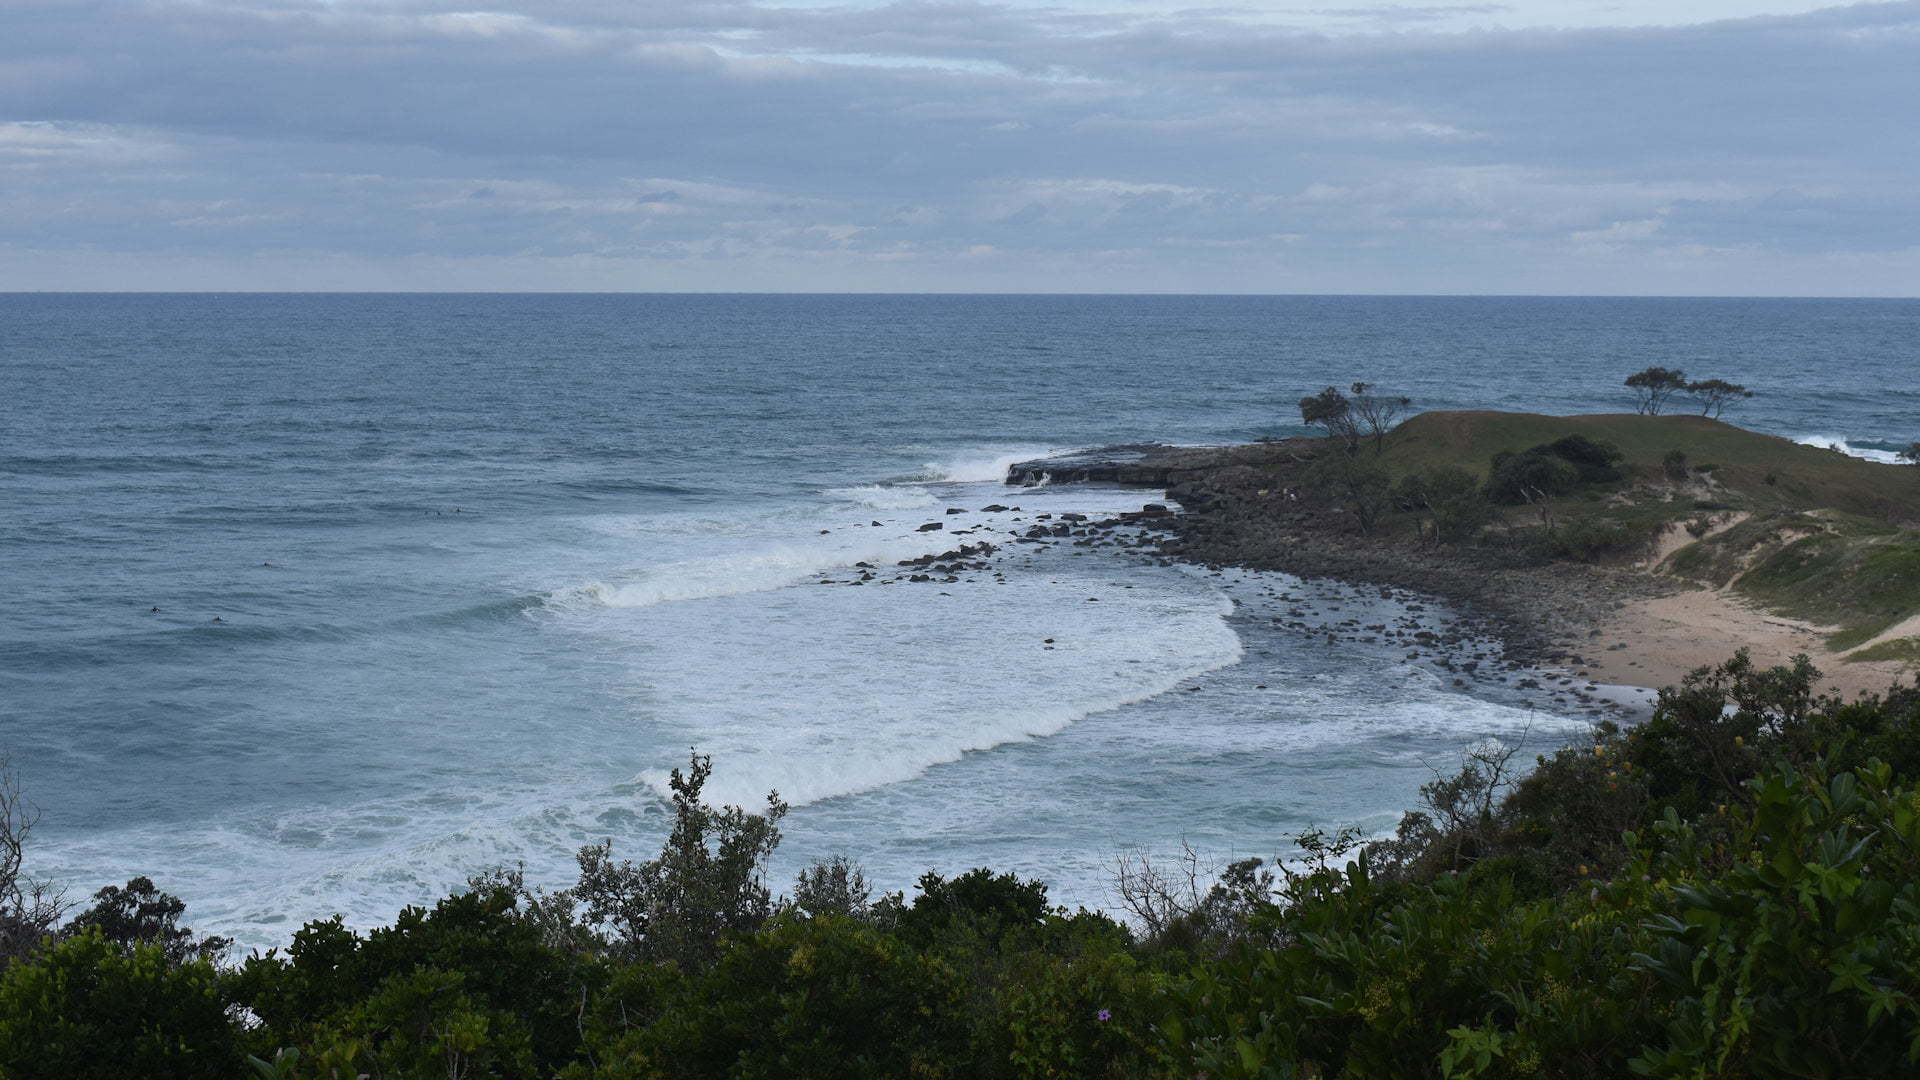 Surfing beach at Angourie Surfing Reserve near Yamba